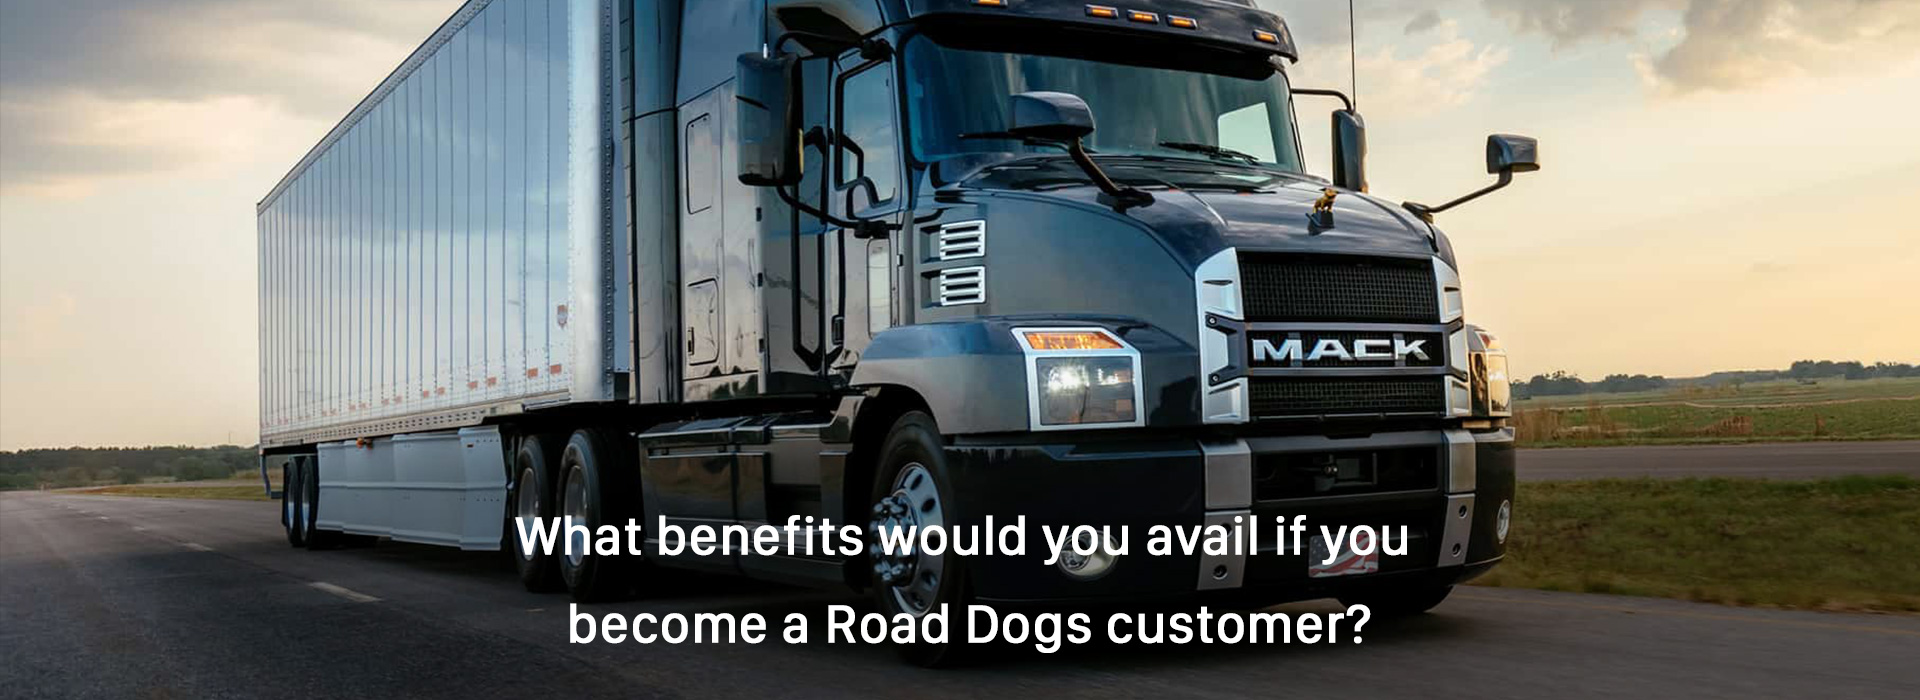 benefits would you avail if you become a Road Dogs customer